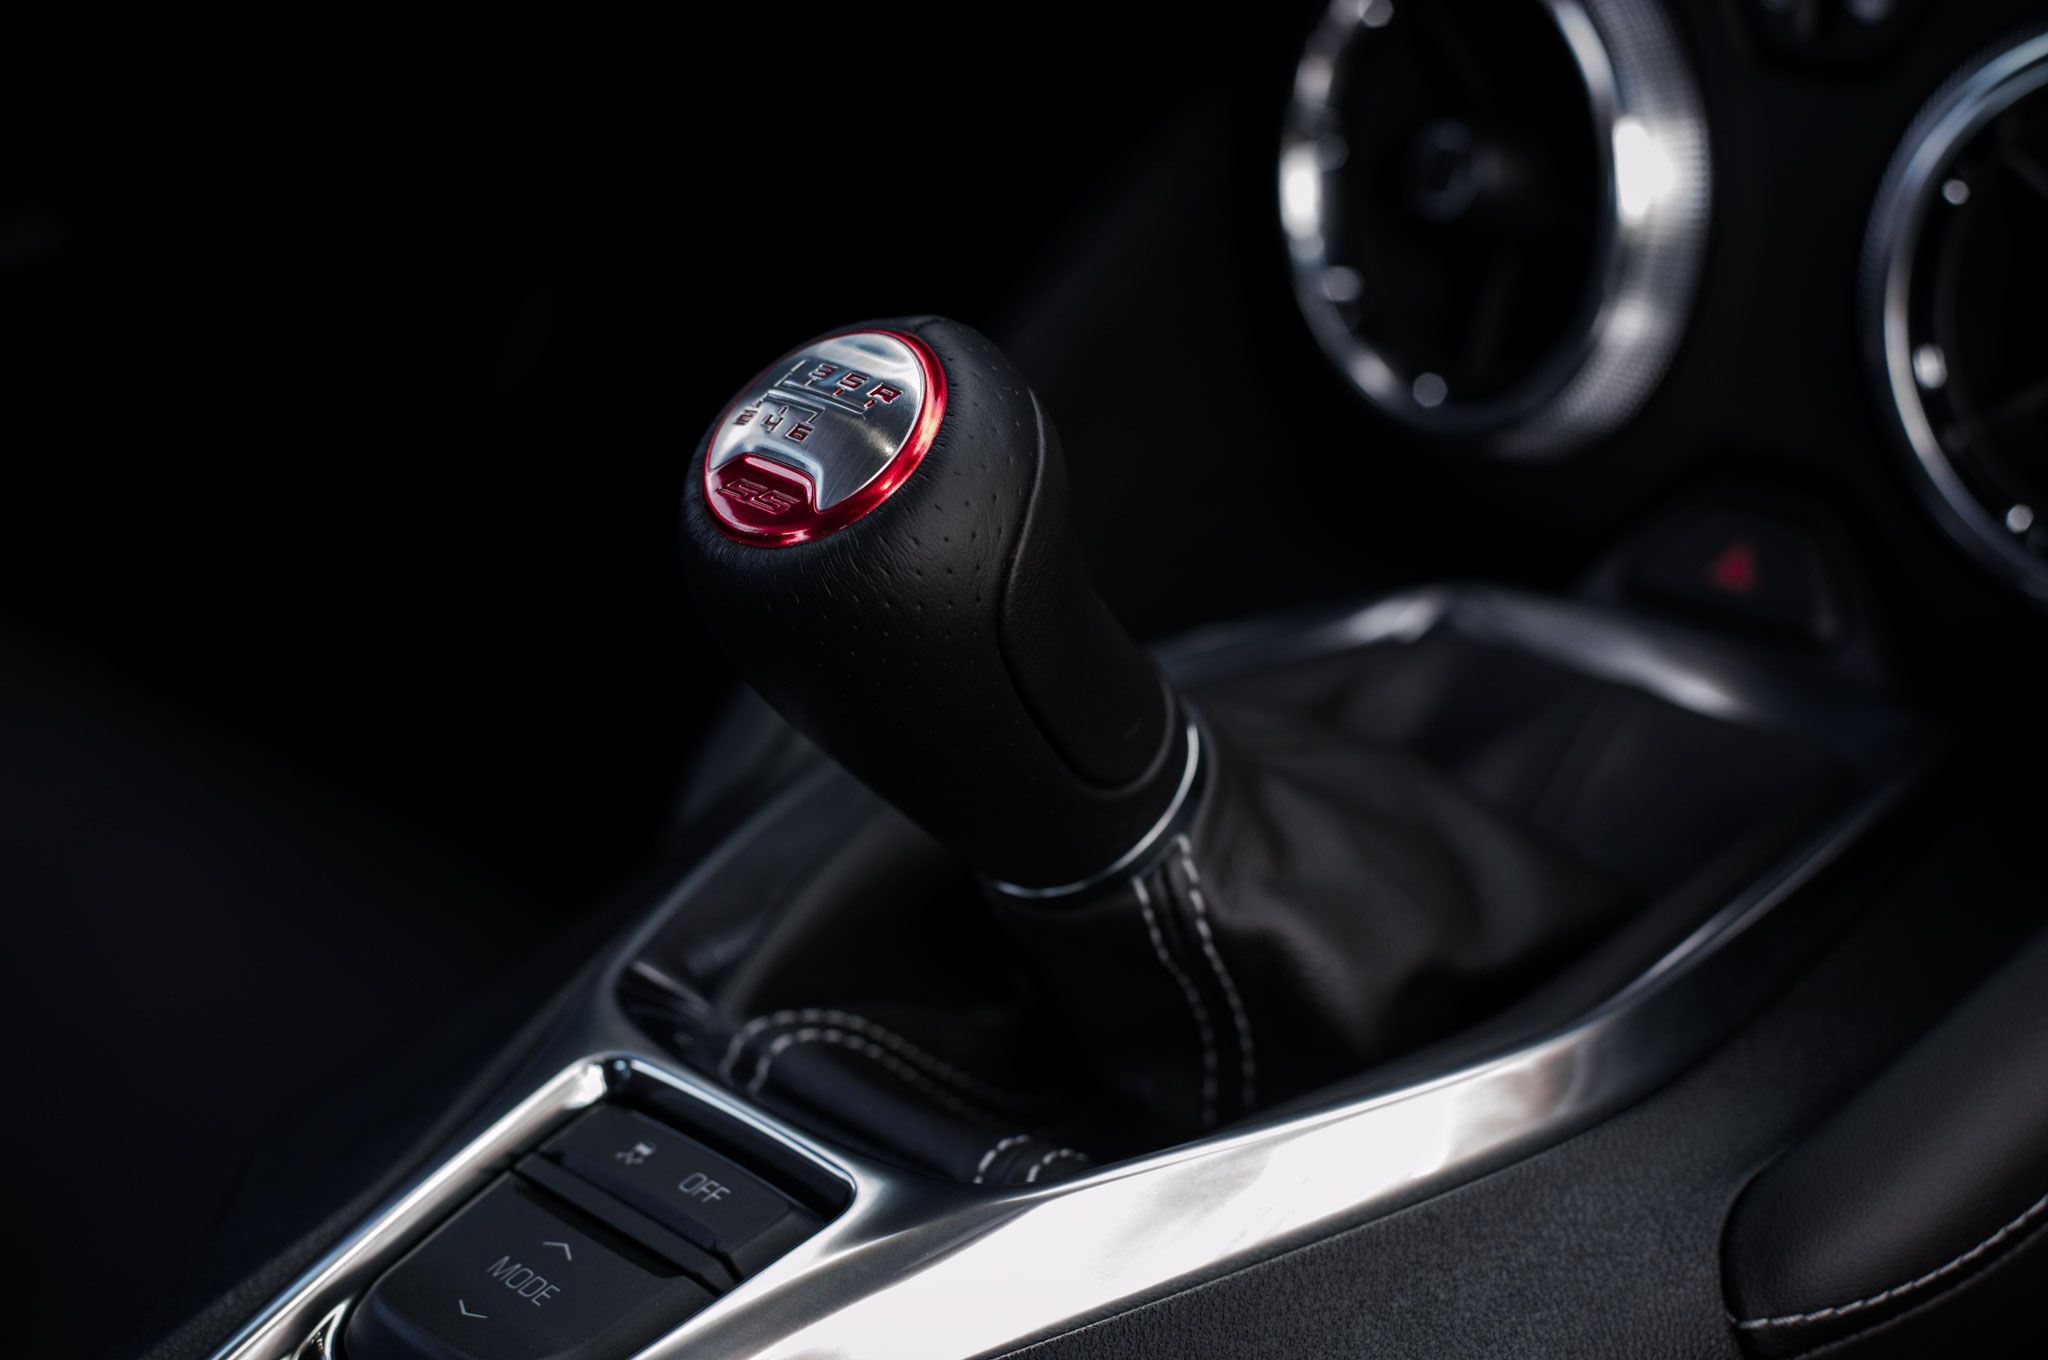 Our Top 10 Favorite Shifters